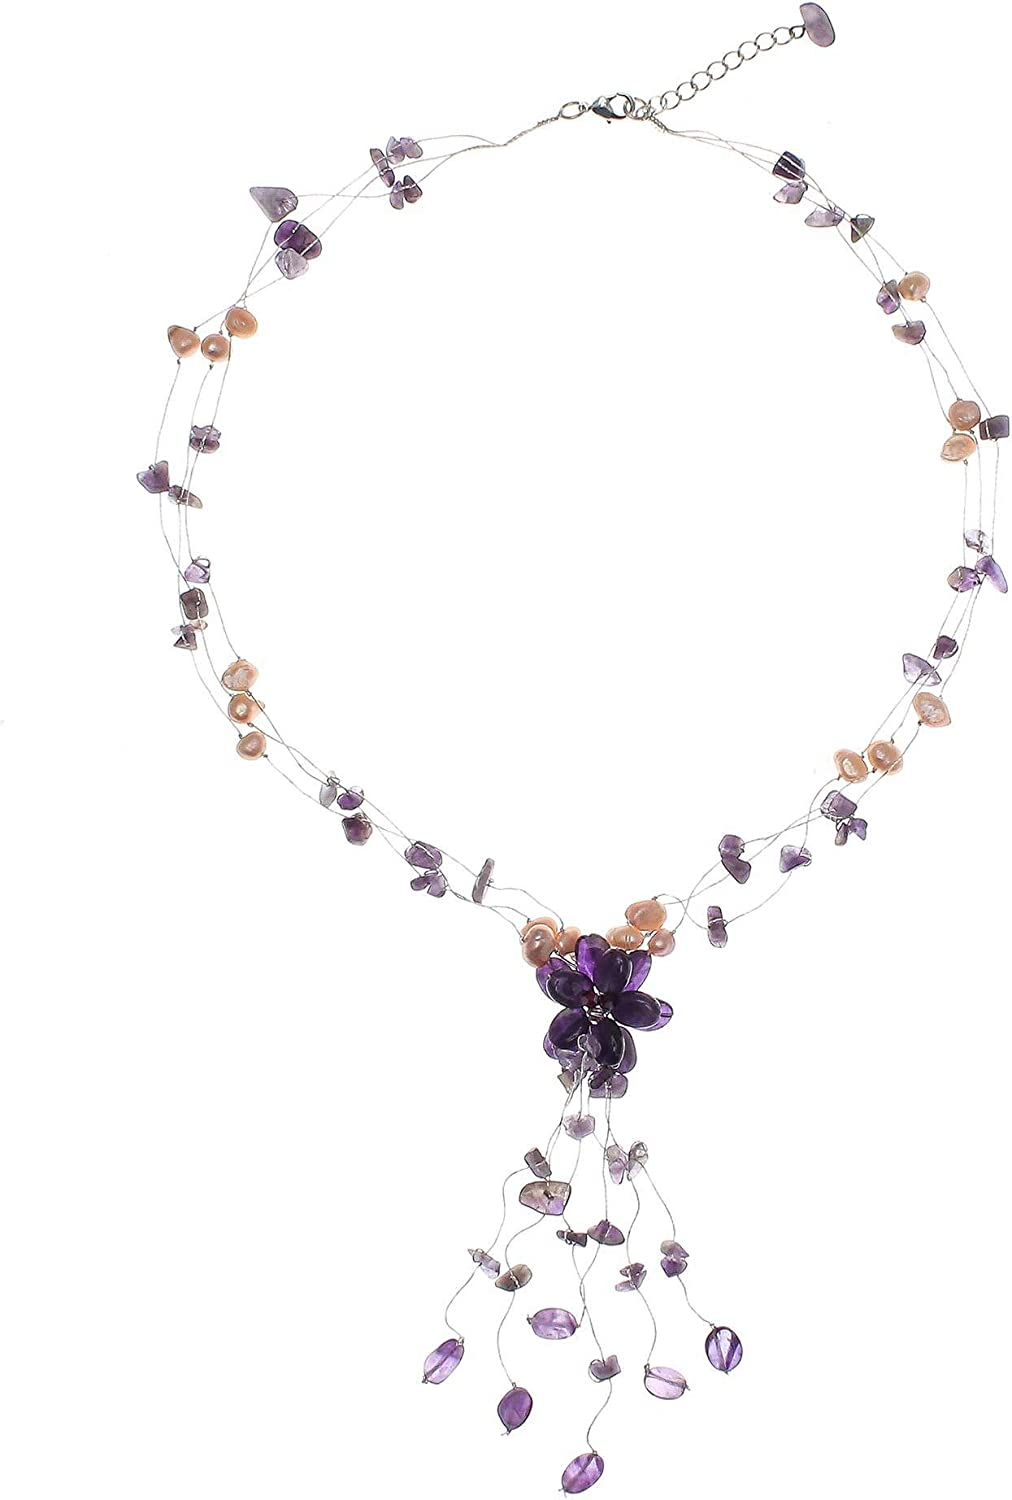 NOVICA Amethyst and Cultured Freshwater Pearl Beaded Necklace with Flower Pendant, Adjustable Length, Fantasy'